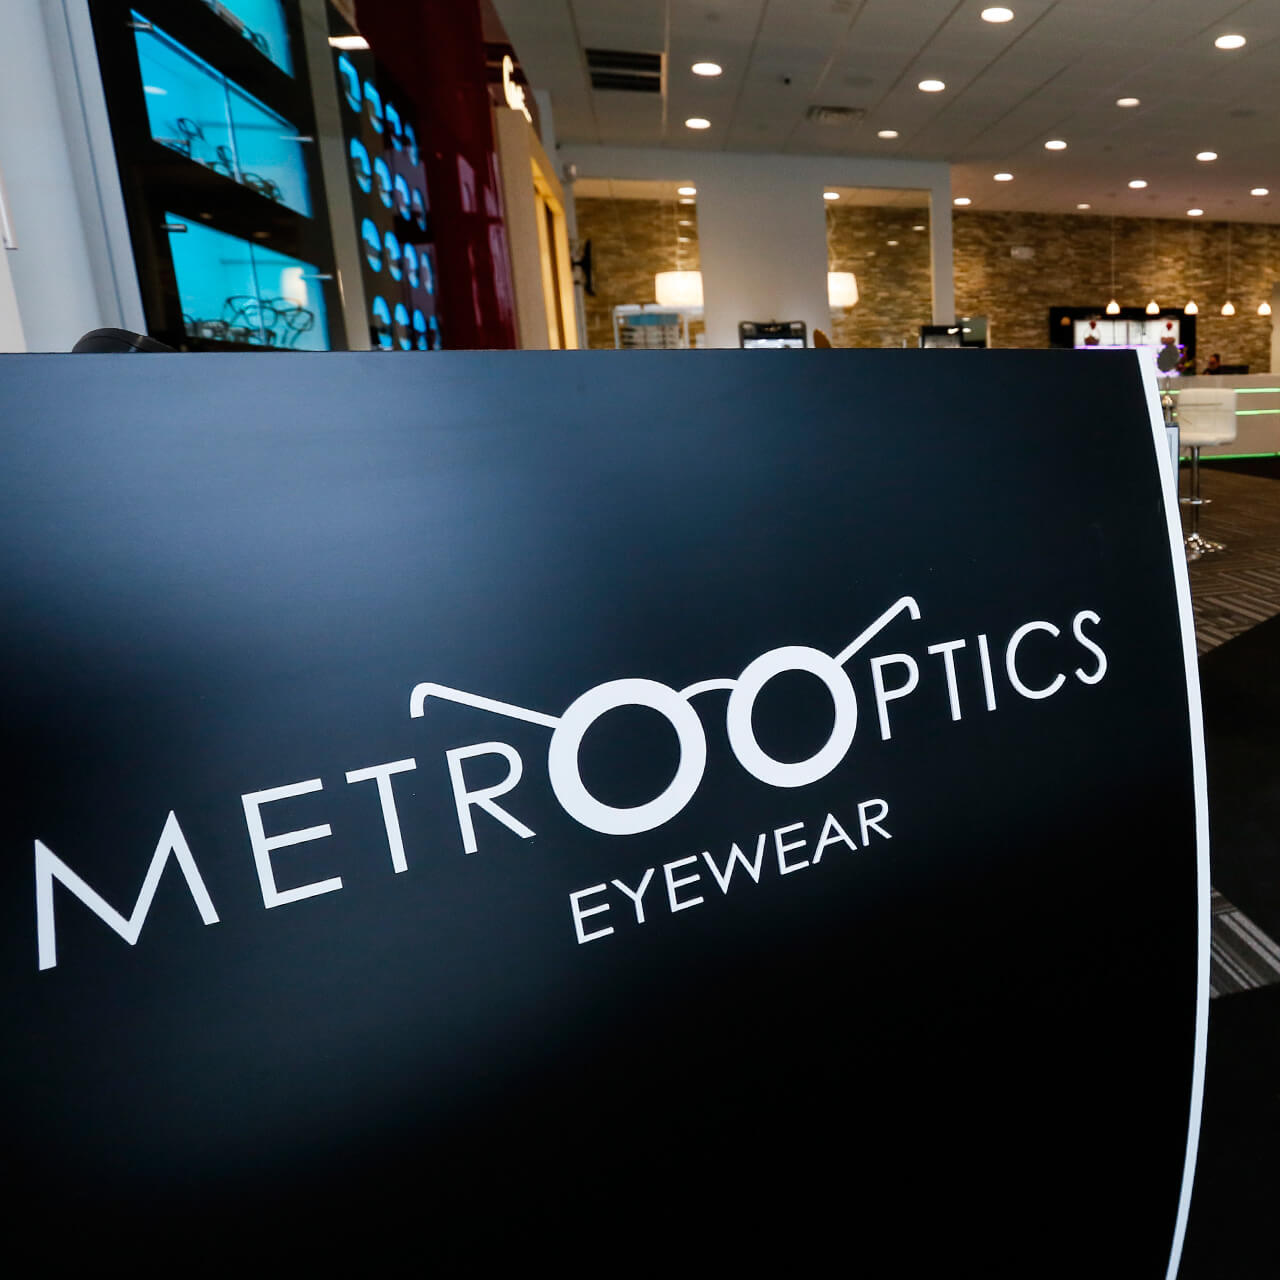 Metro Optics Eyewear